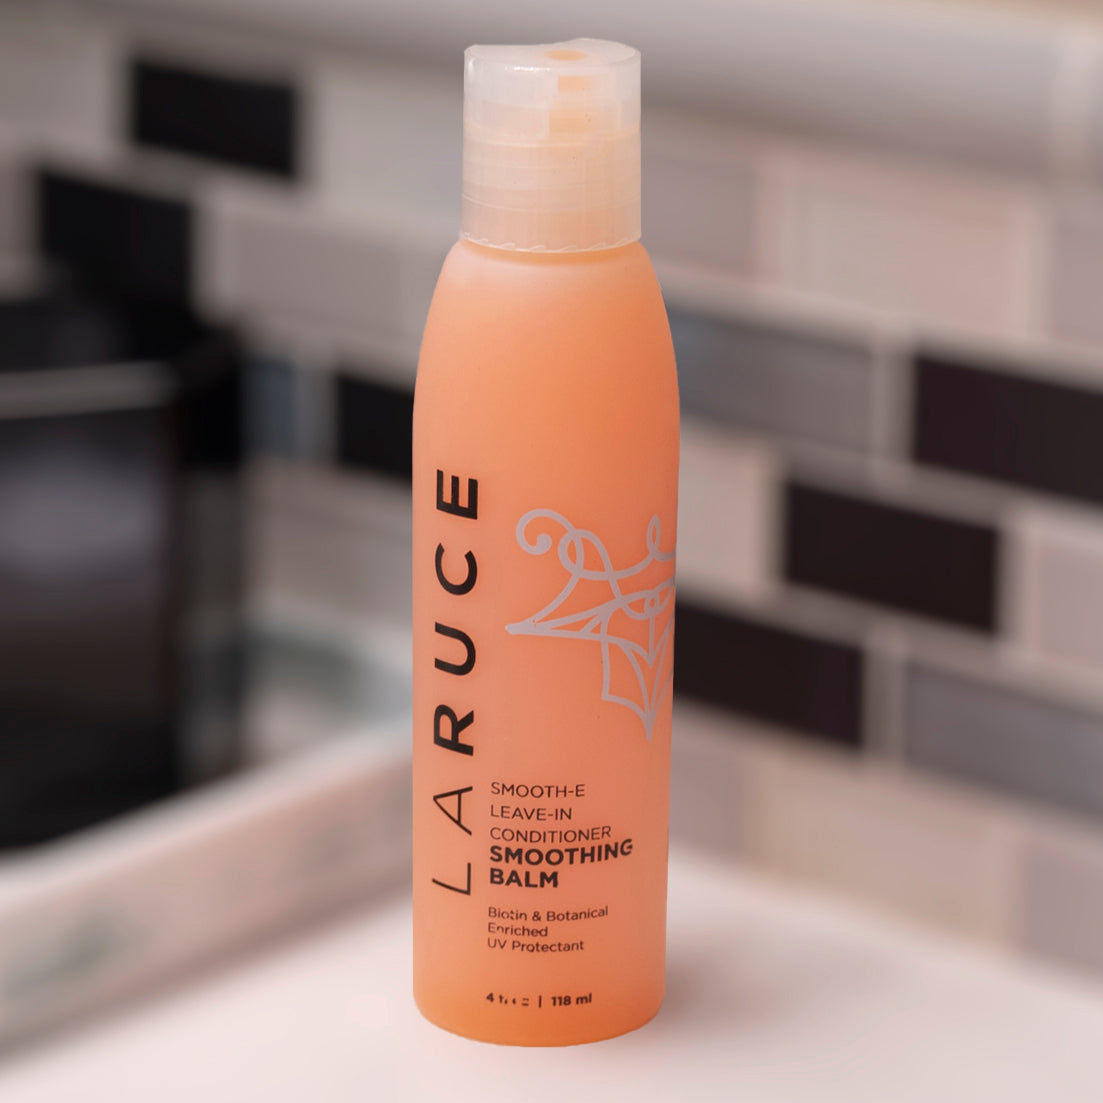 Smooth-E Leave In Conditioner Smoothing Balm